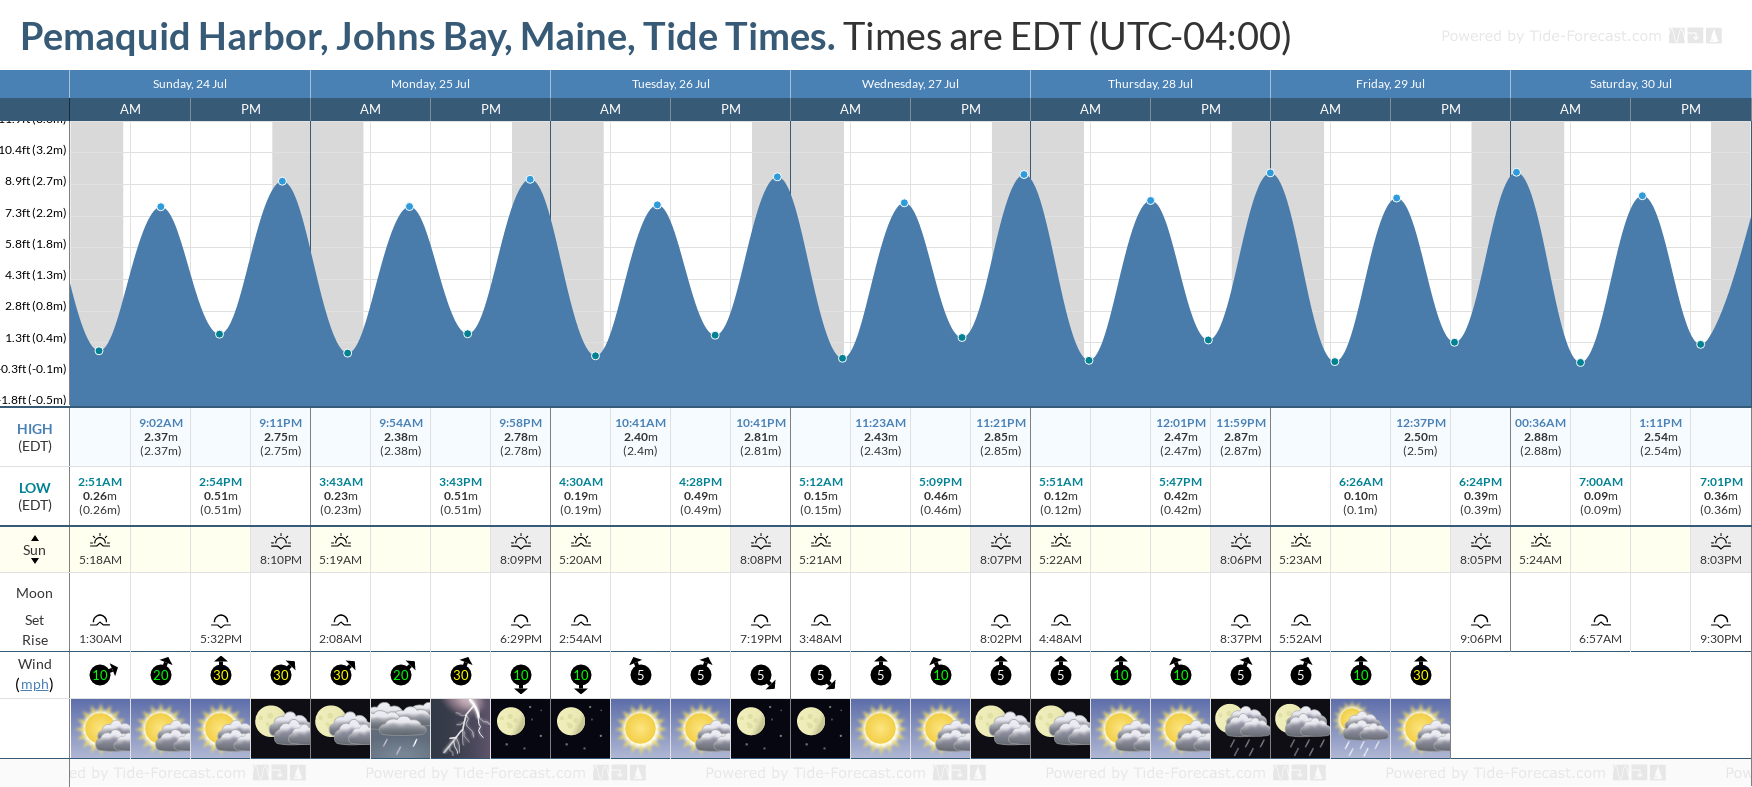 Pemaquid Harbor, Johns Bay, Maine Tide Chart including high and low tide tide times for the next 7 days